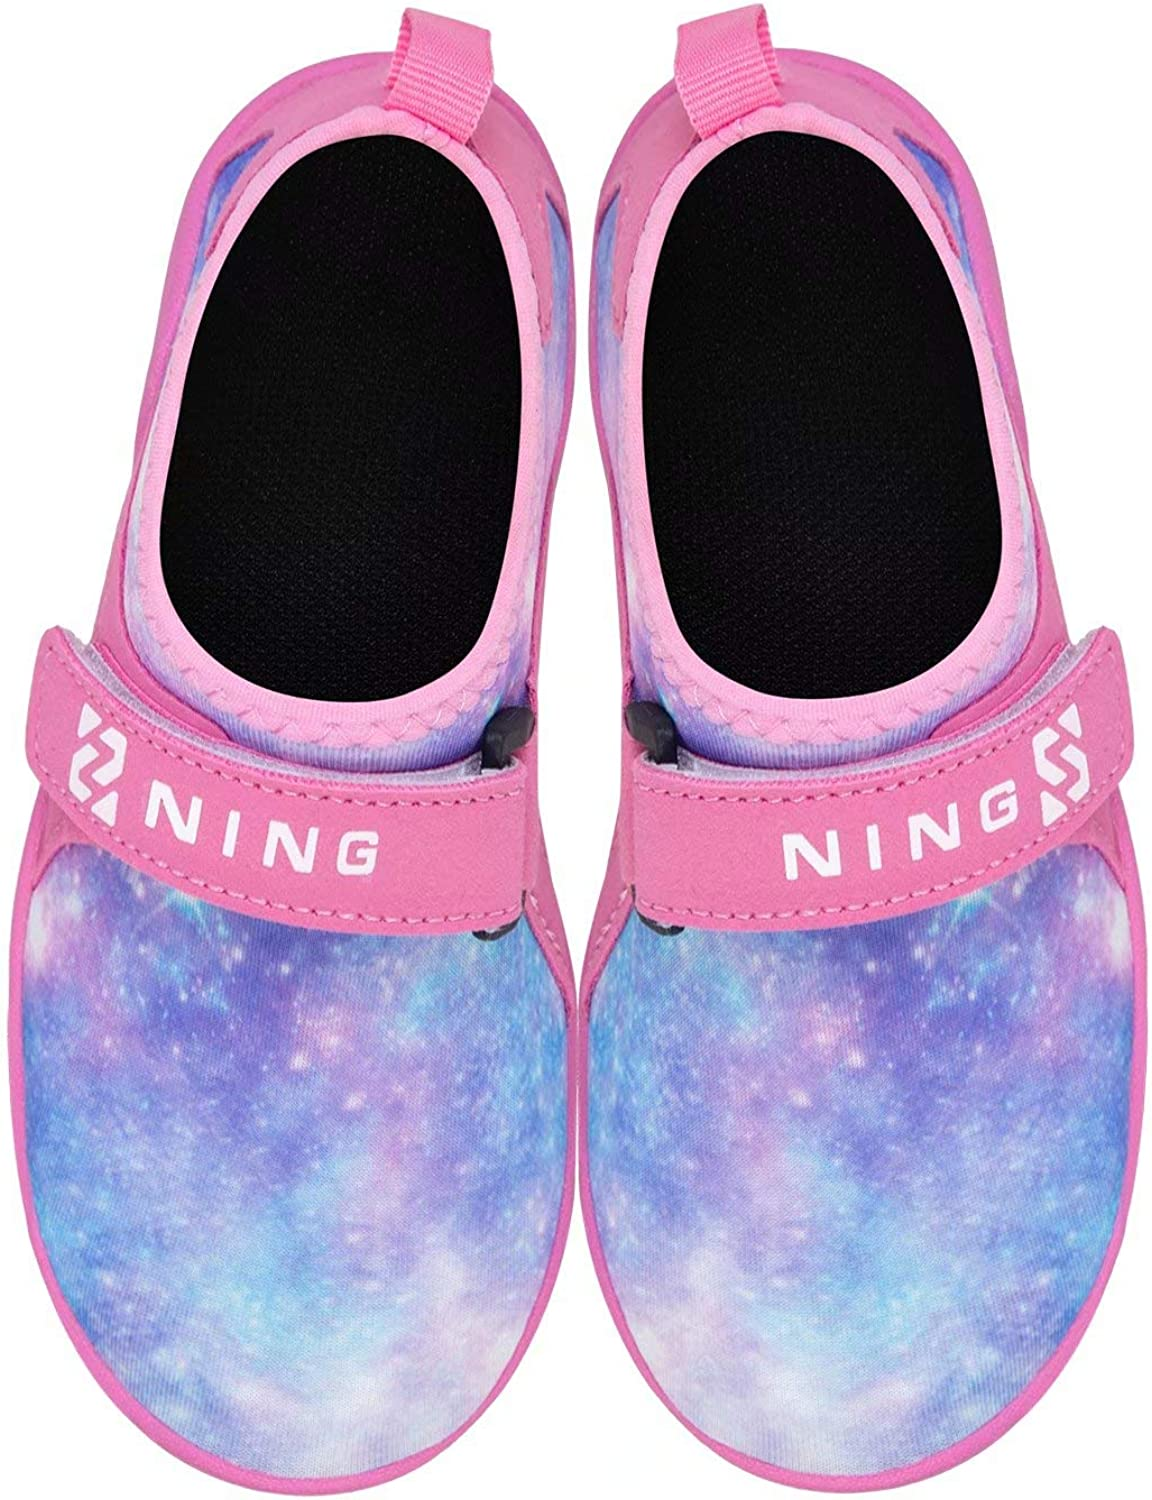 Torotto Kids-Water-Shoes-Toddler-Swim-Shoes-Pool-Shoes Lightweight-Sport-Shoes Barefoot Non-Slip Aqua-Socks Athletic-Sneakers for Girls Boys